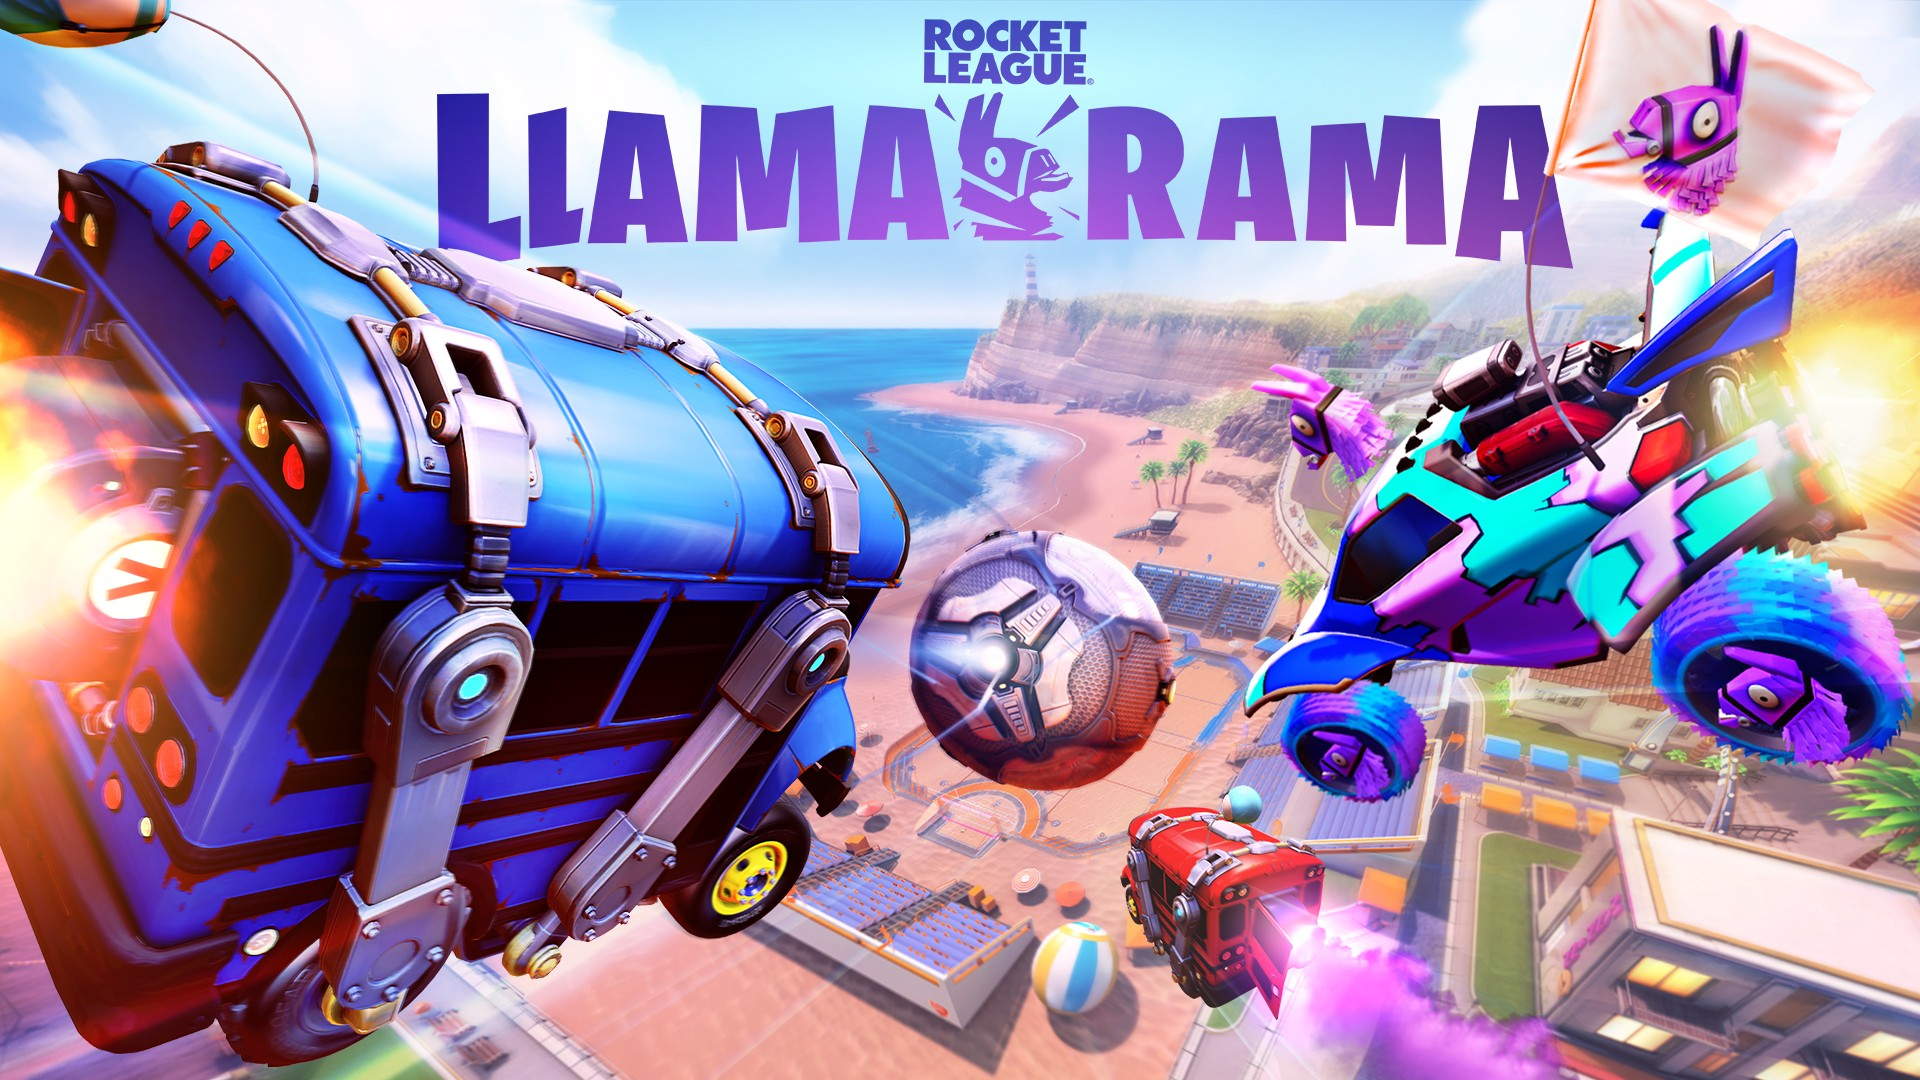 Start Your Engines for Llama-Rama: A Fortnite-Rocket League Crossover Event - Xbox Wire